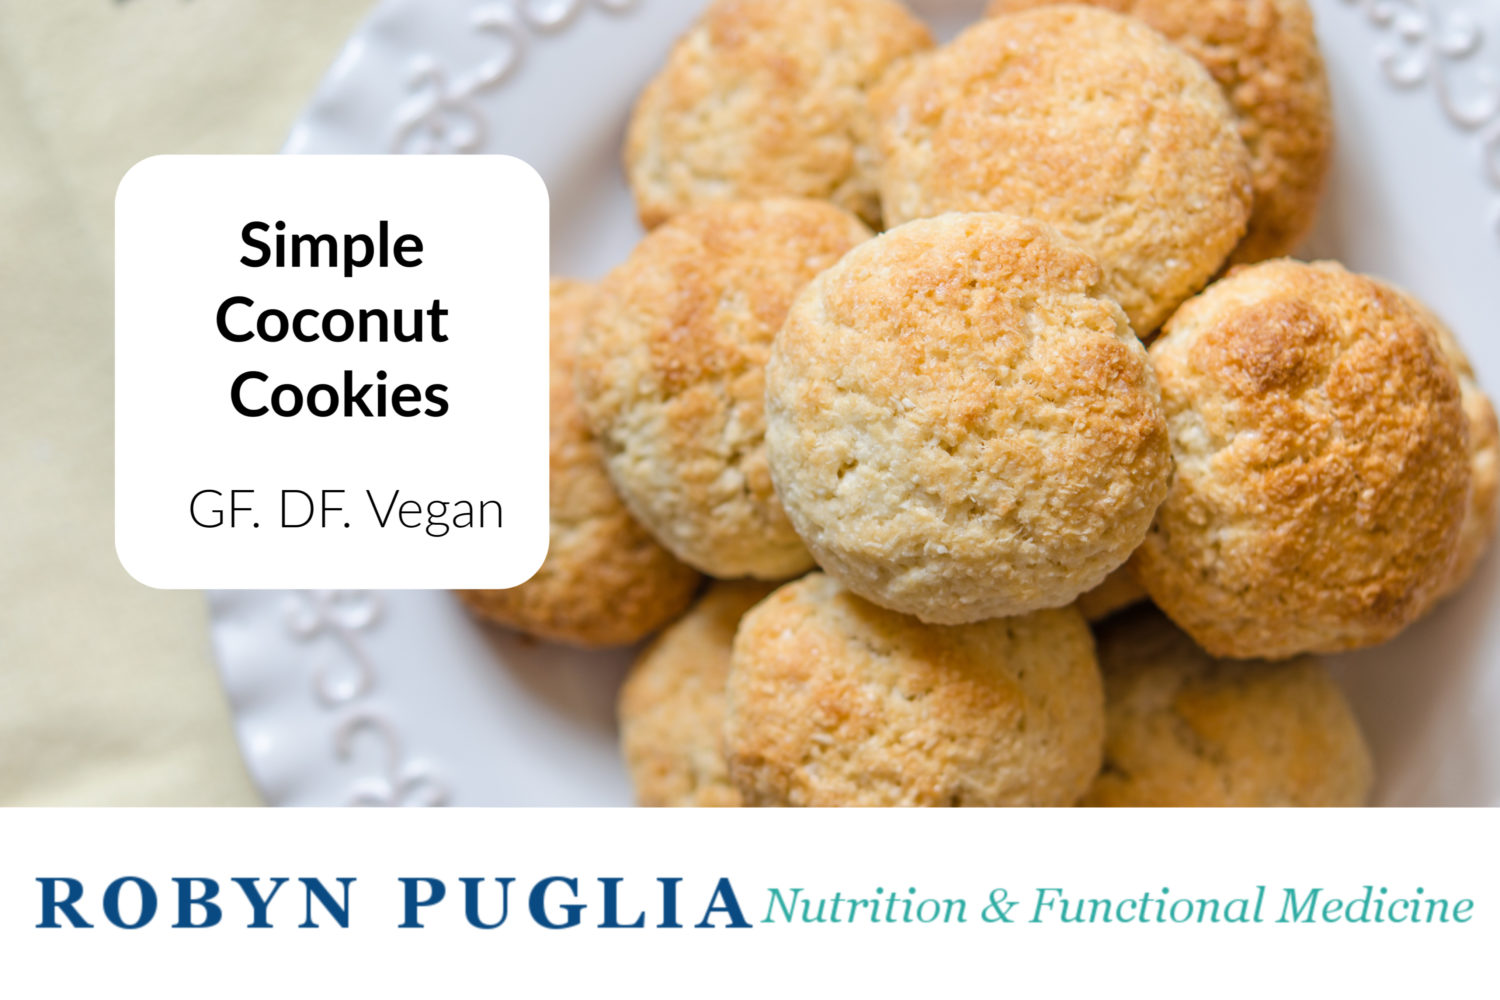 Simple Coconut Cookies.